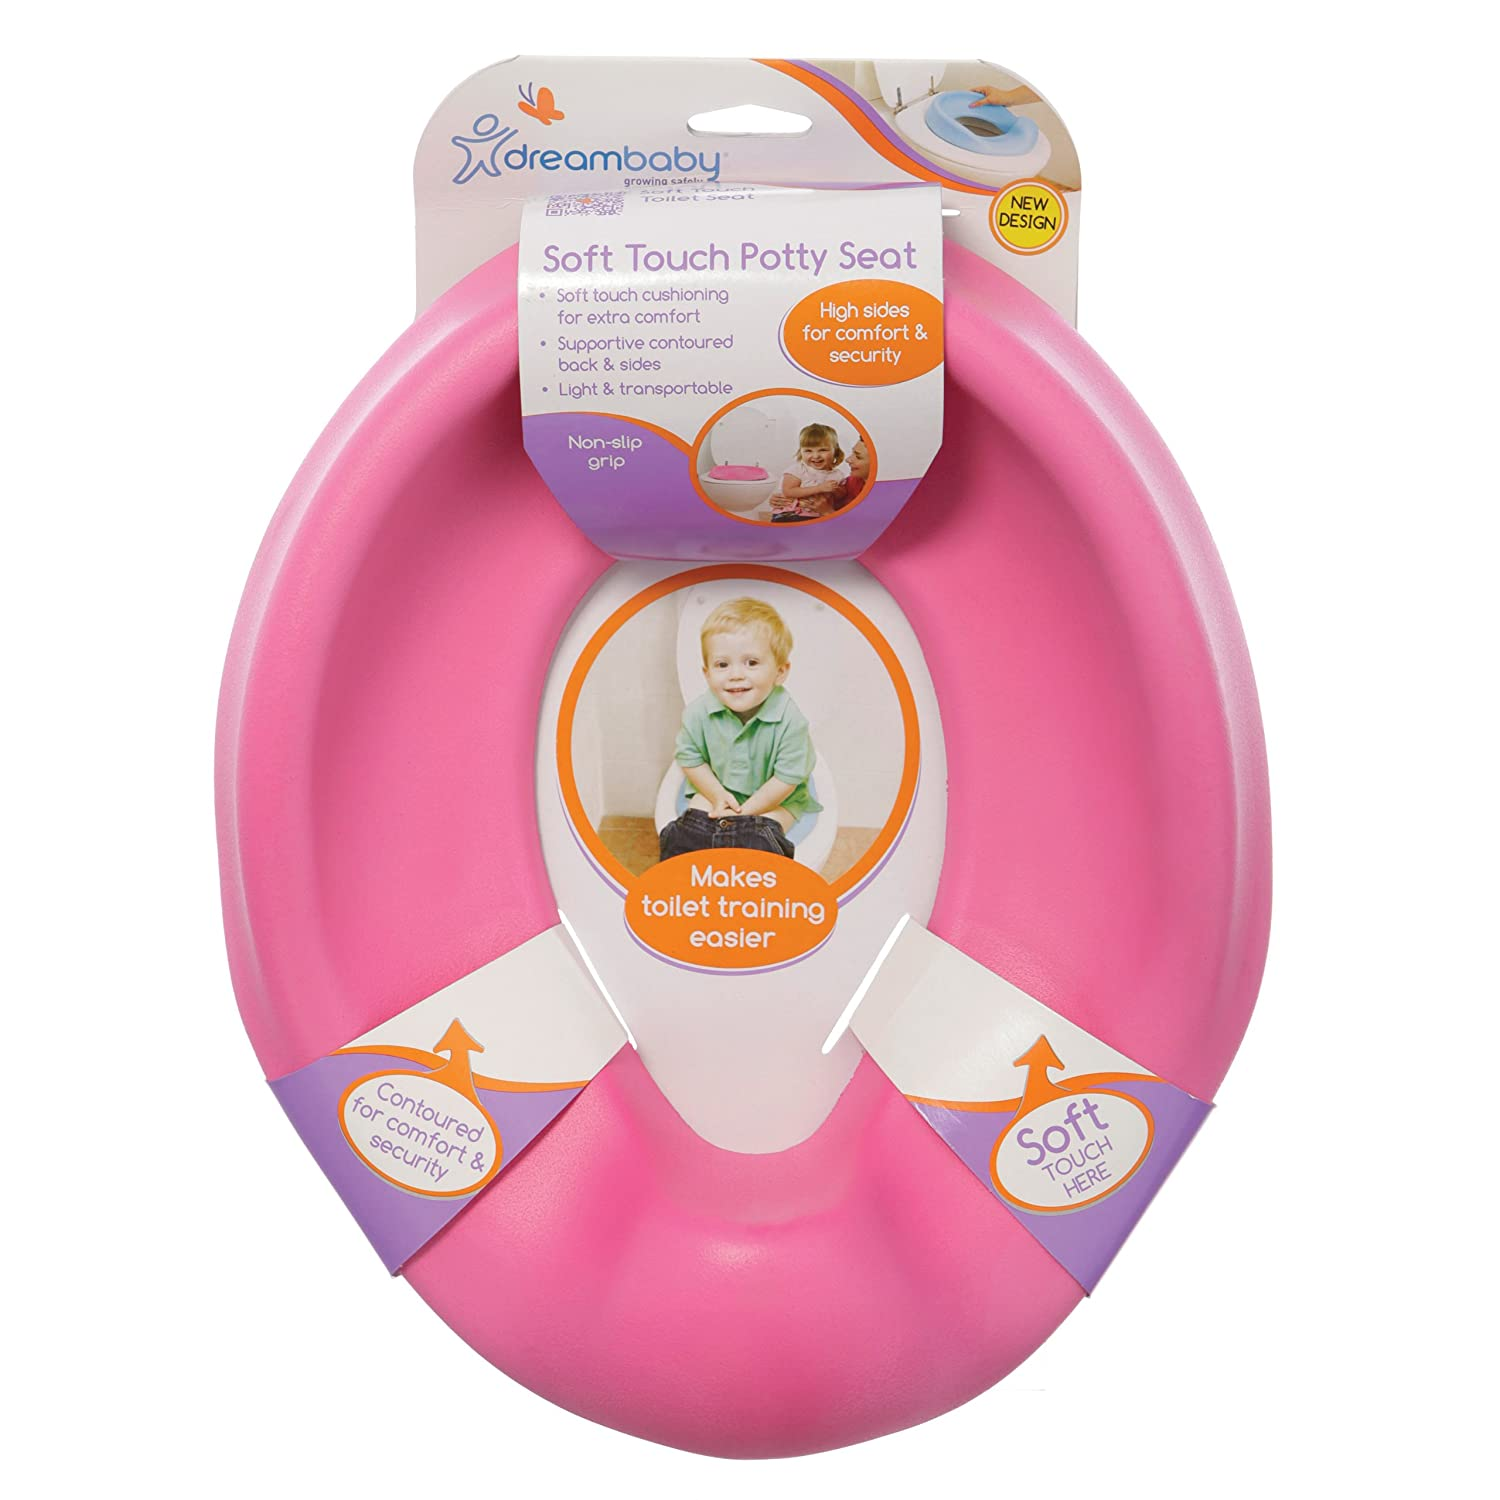 Dreambaby Soft Touch Potty Seat, Pink